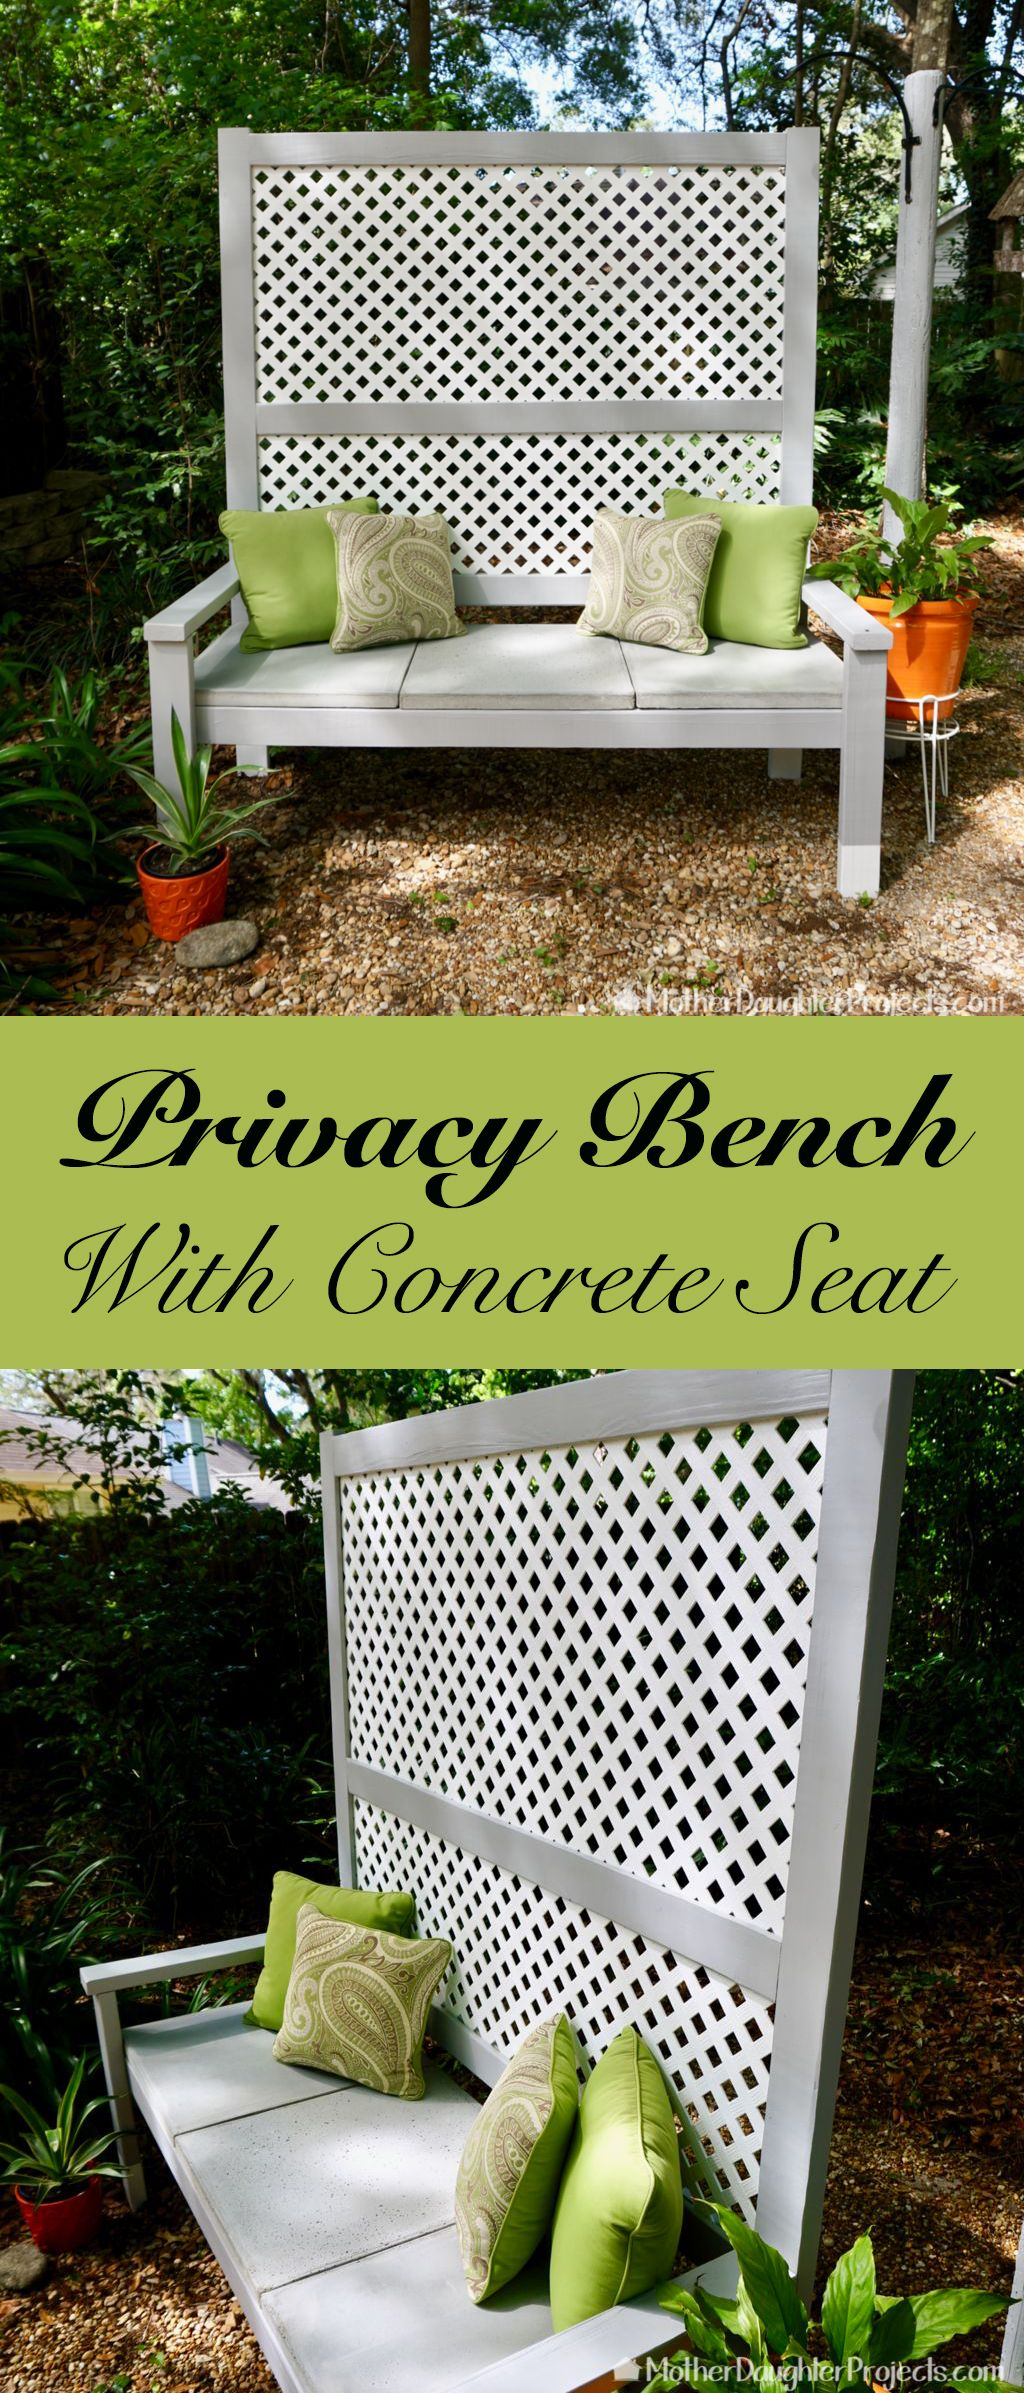 outdoor privacy bench with concrete seat ga¤rten